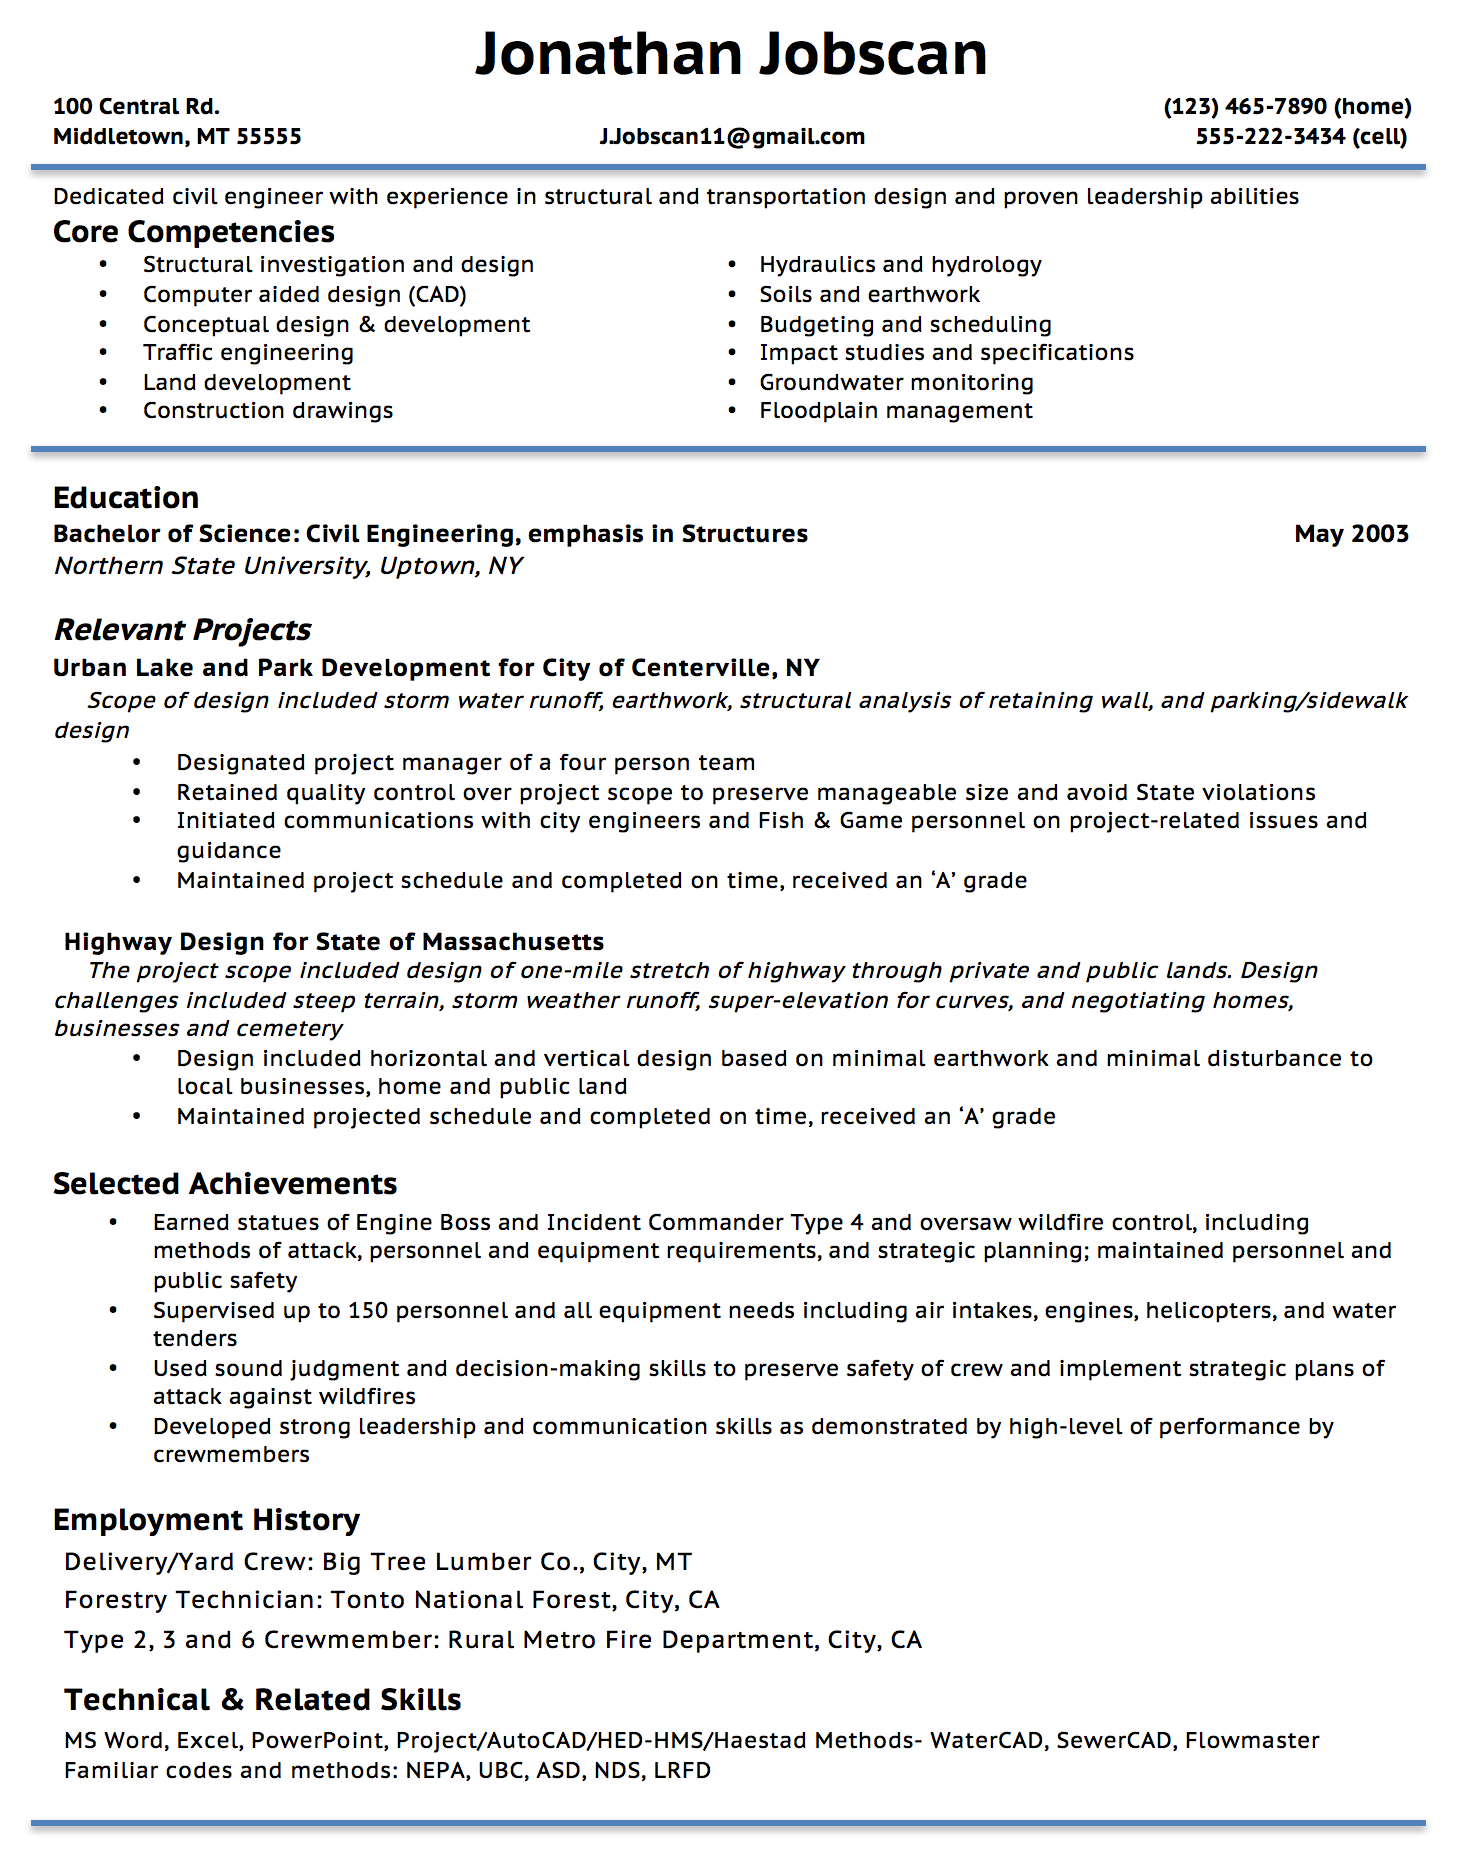 Opposenewapstandardsus  Unique Resume Writing Guide  Jobscan With Hot Example Of A Functional Resume Format With Astonishing Resume Wording Examples Also Ceo Resumes In Addition Resume With Volunteer Experience And Salesforce Developer Resume As Well As Manager Resume Objective Additionally Sample Cover Letter For A Resume From Jobscanco With Opposenewapstandardsus  Hot Resume Writing Guide  Jobscan With Astonishing Example Of A Functional Resume Format And Unique Resume Wording Examples Also Ceo Resumes In Addition Resume With Volunteer Experience From Jobscanco